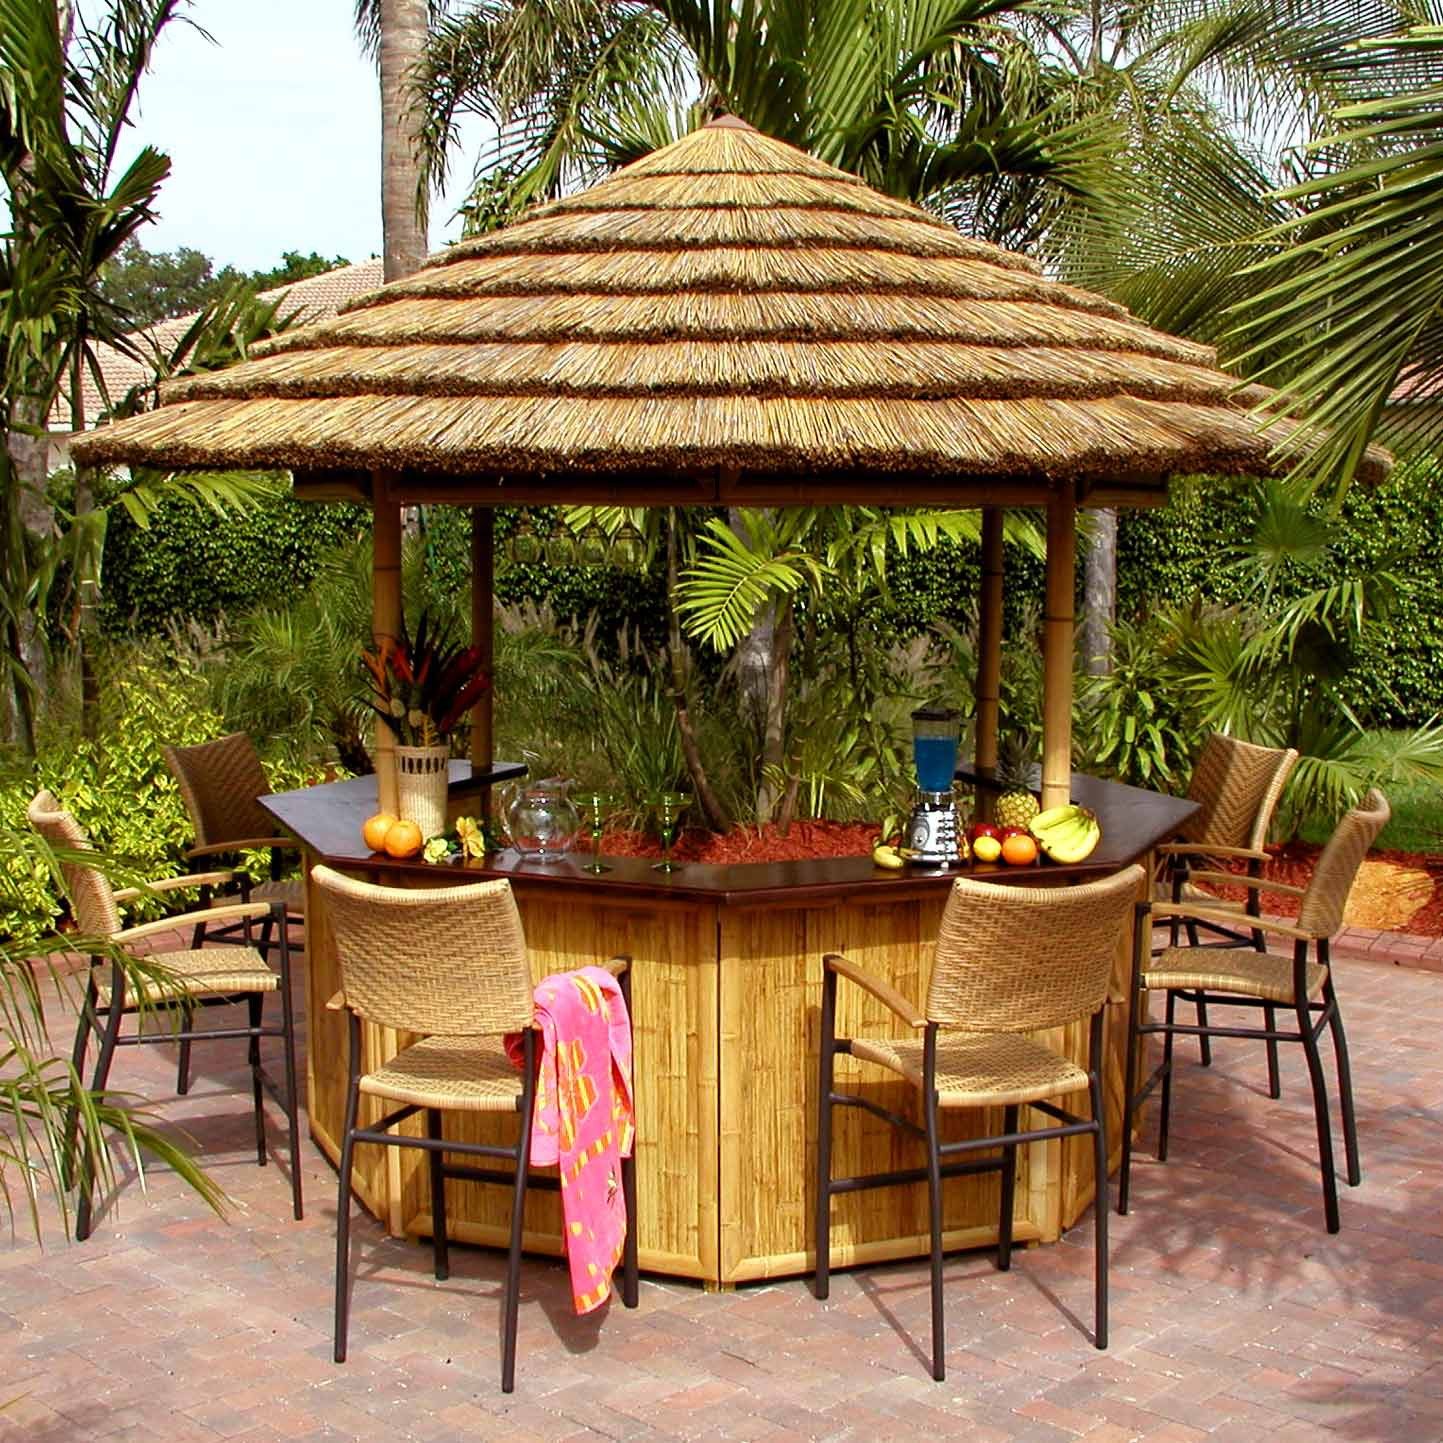 20 Ideas for Outdoor Tiki Bar - Best Collections Ever ...